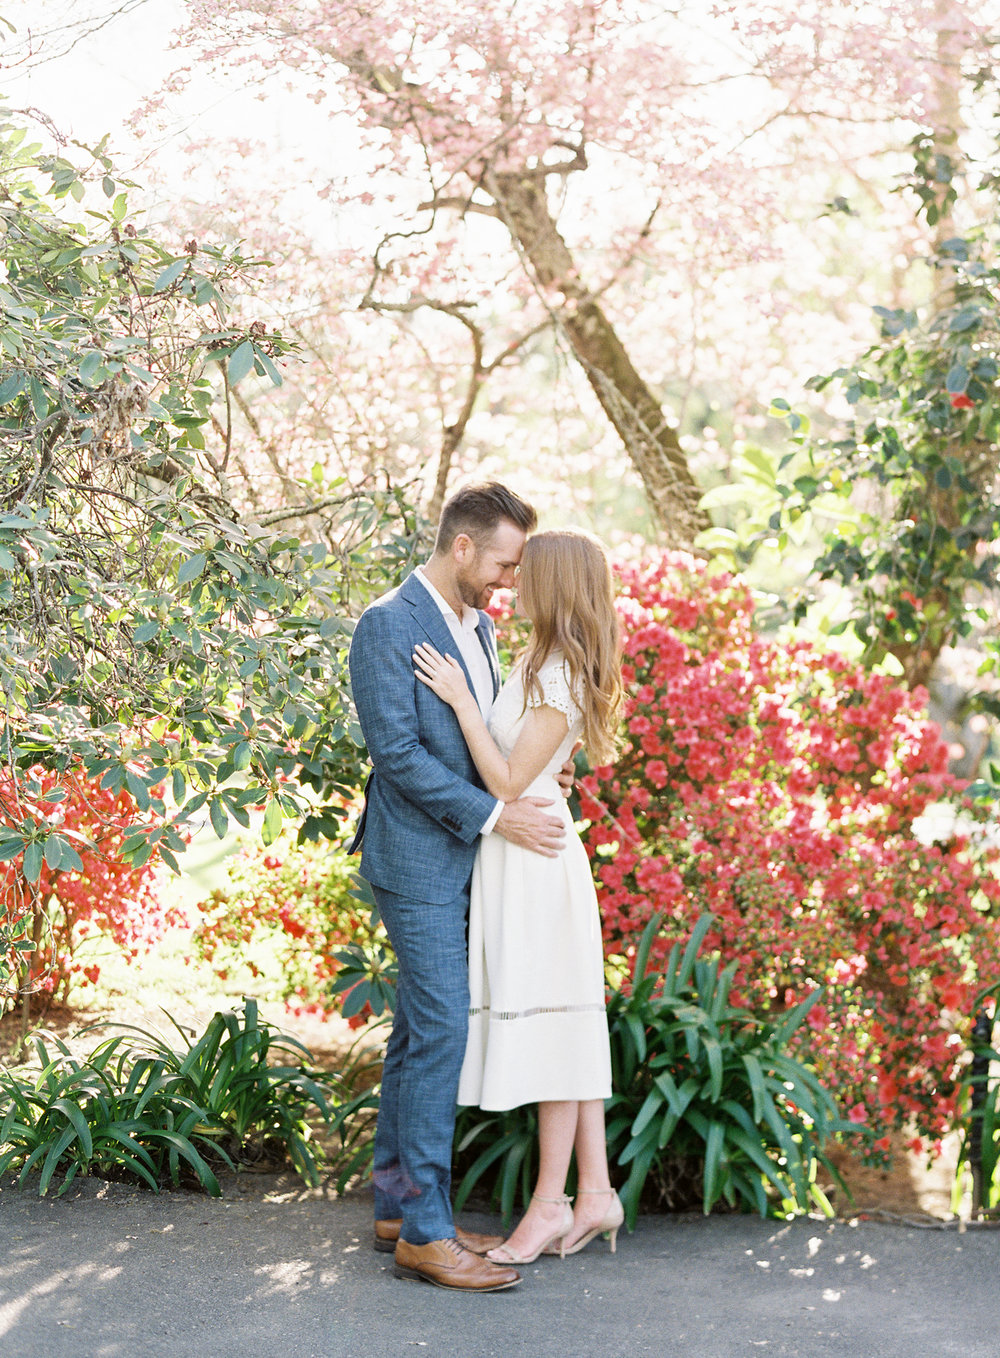 Meghan Mehan Photography - Napa Engagement Session 018.jpg